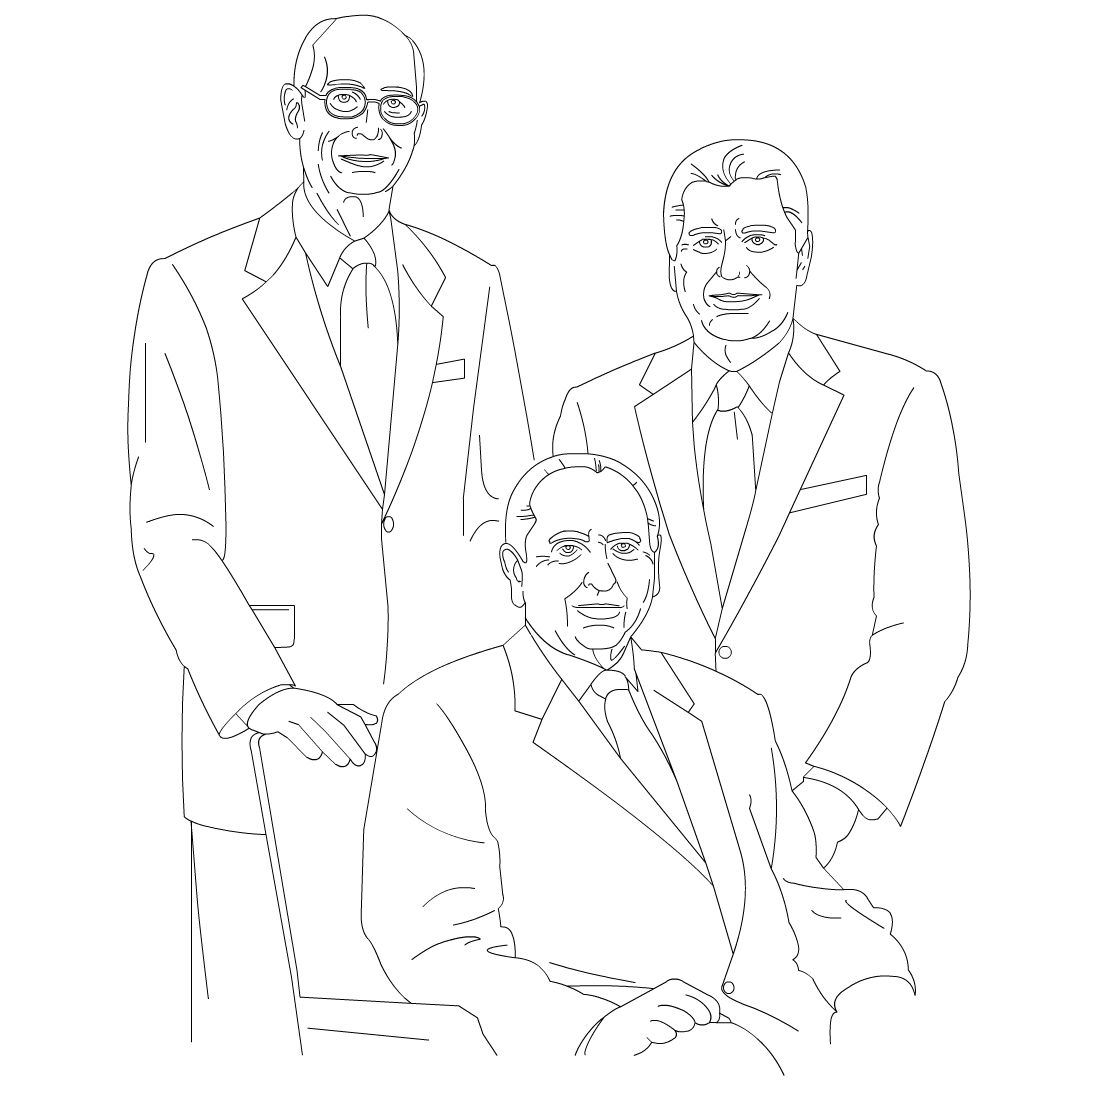 free lds clipart to color for primary children first presidency monson eyring uchtdorf [ 1100 x 1100 Pixel ]